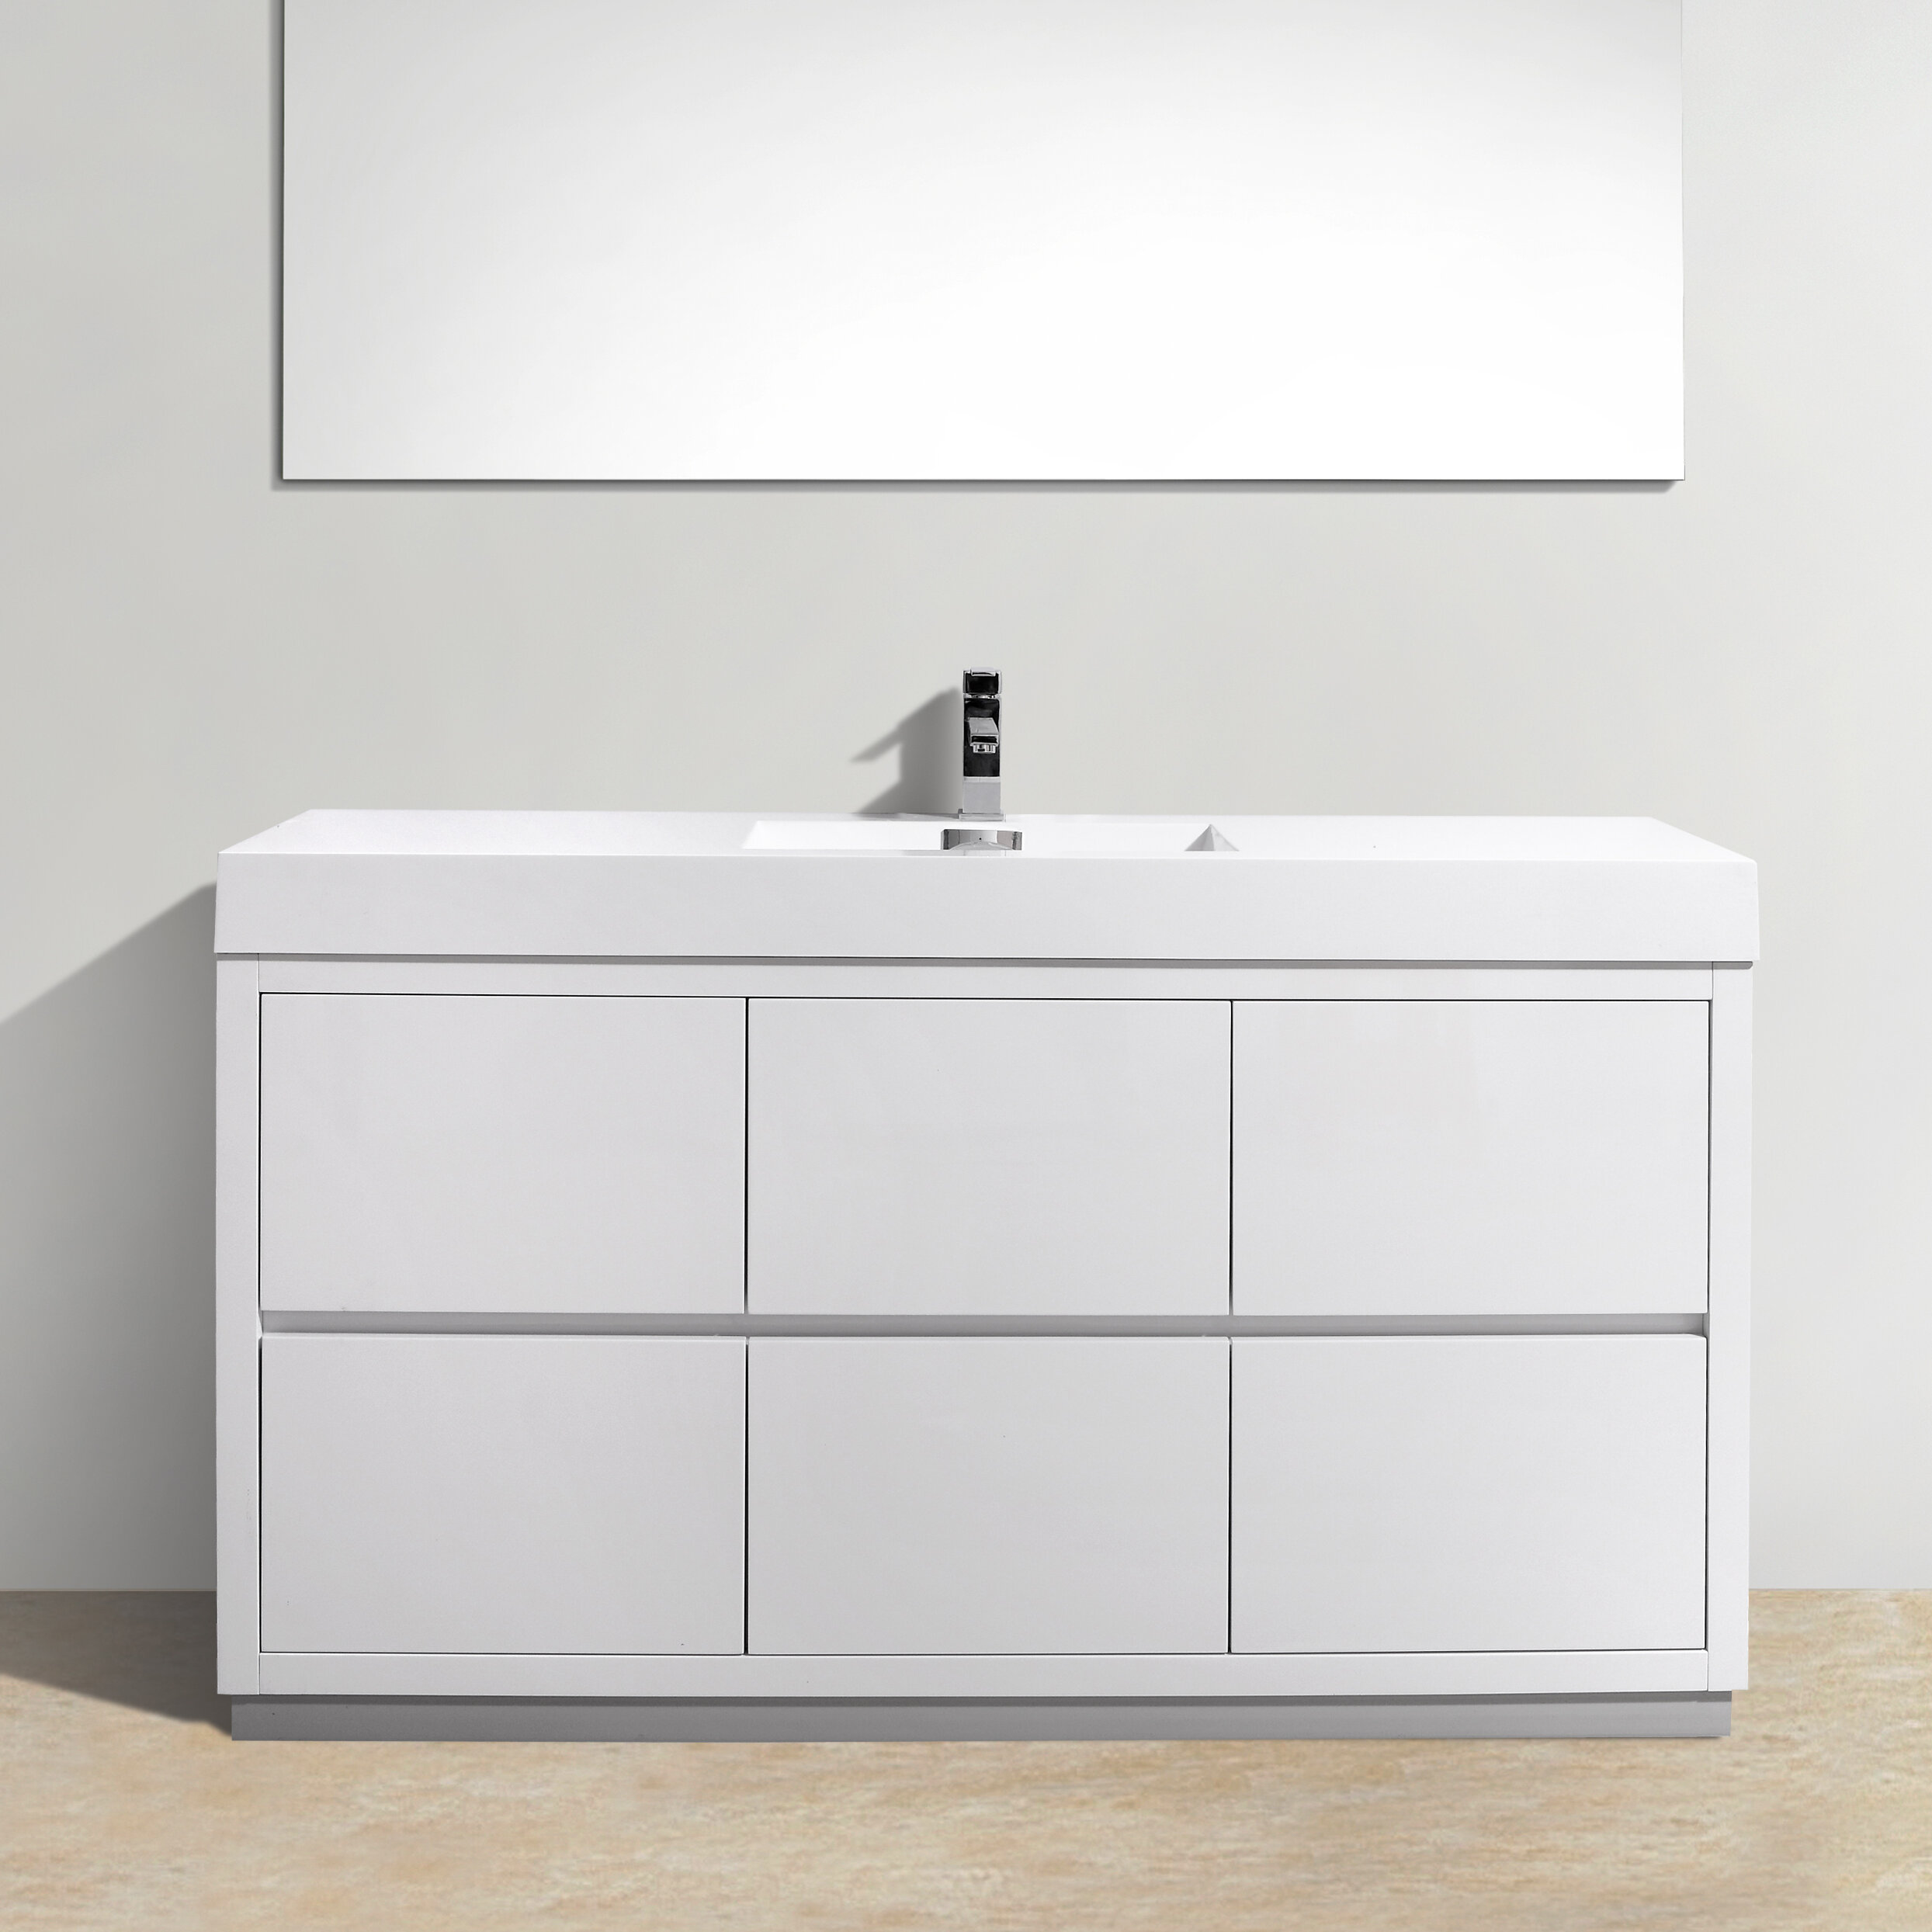 integrated acrylic bathroom vanity product grey eviva lugano white a with modern sink oak double